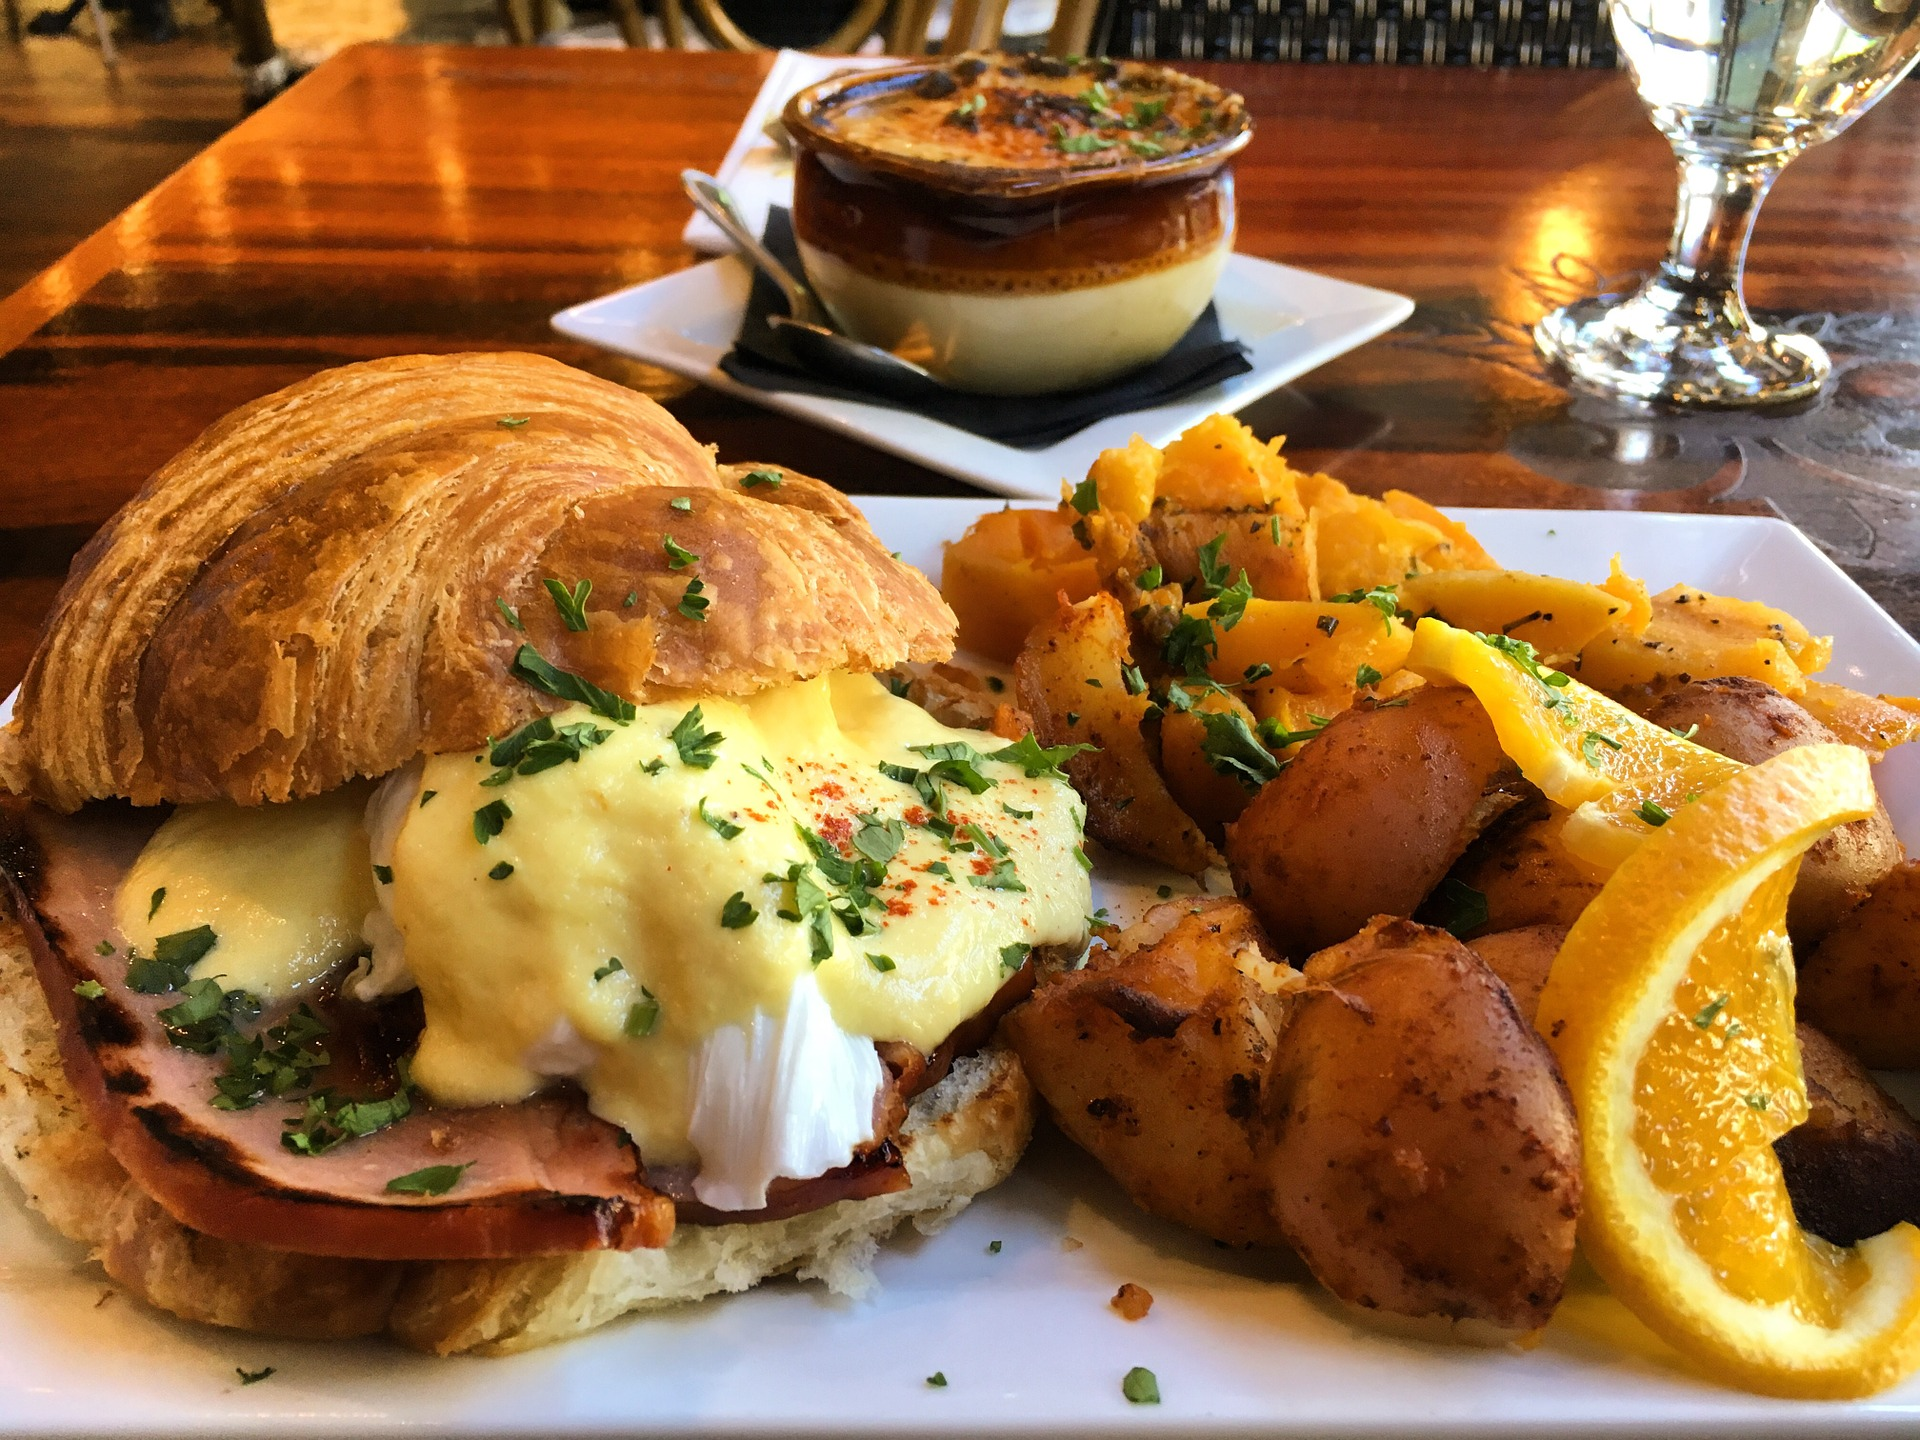 The 10 best breakfast and brunch spots in siox falls for Article on french cuisine